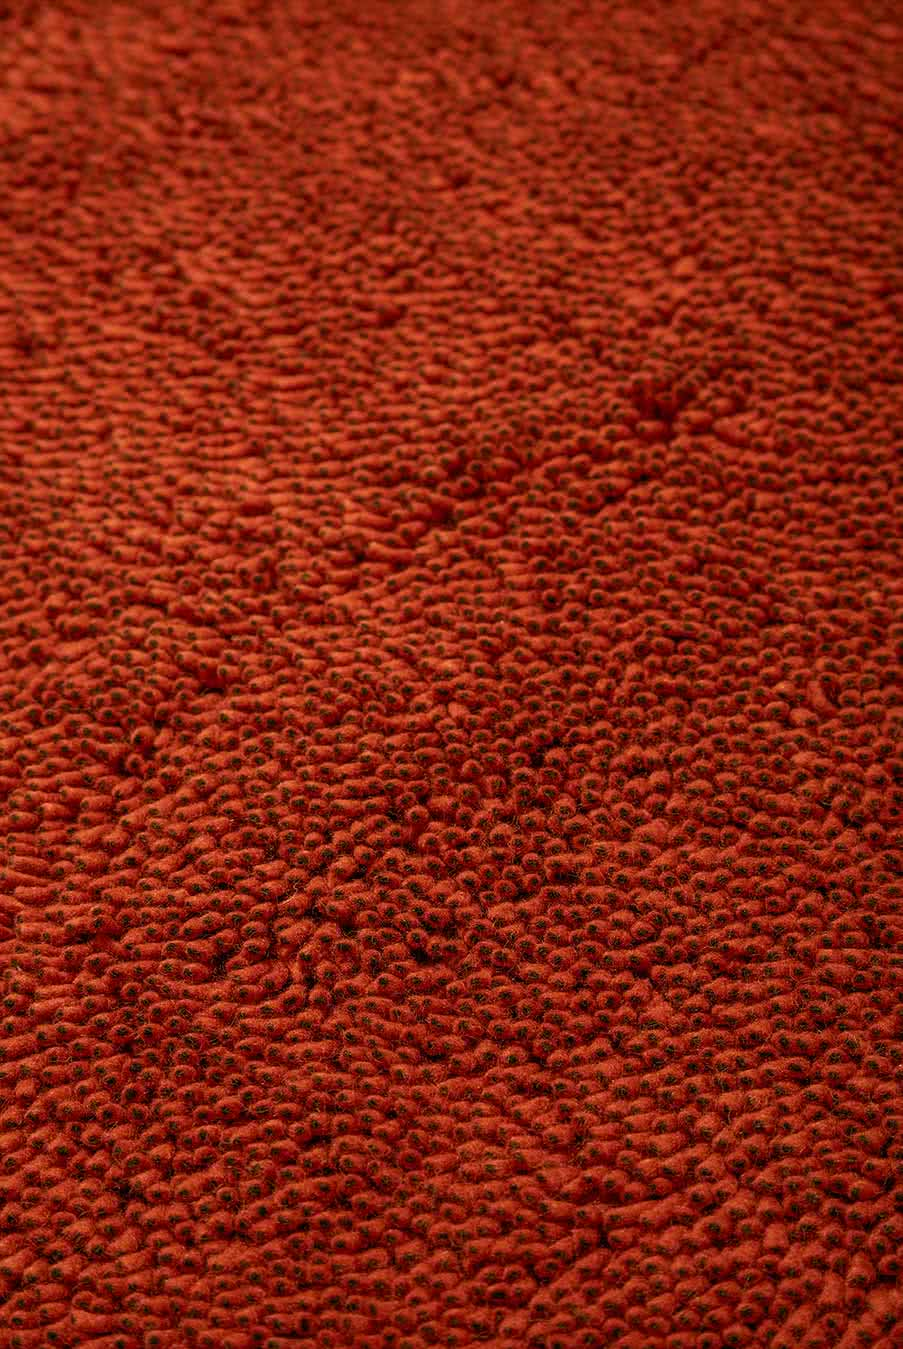 Close up view of textured Coral Shag rug in red colour